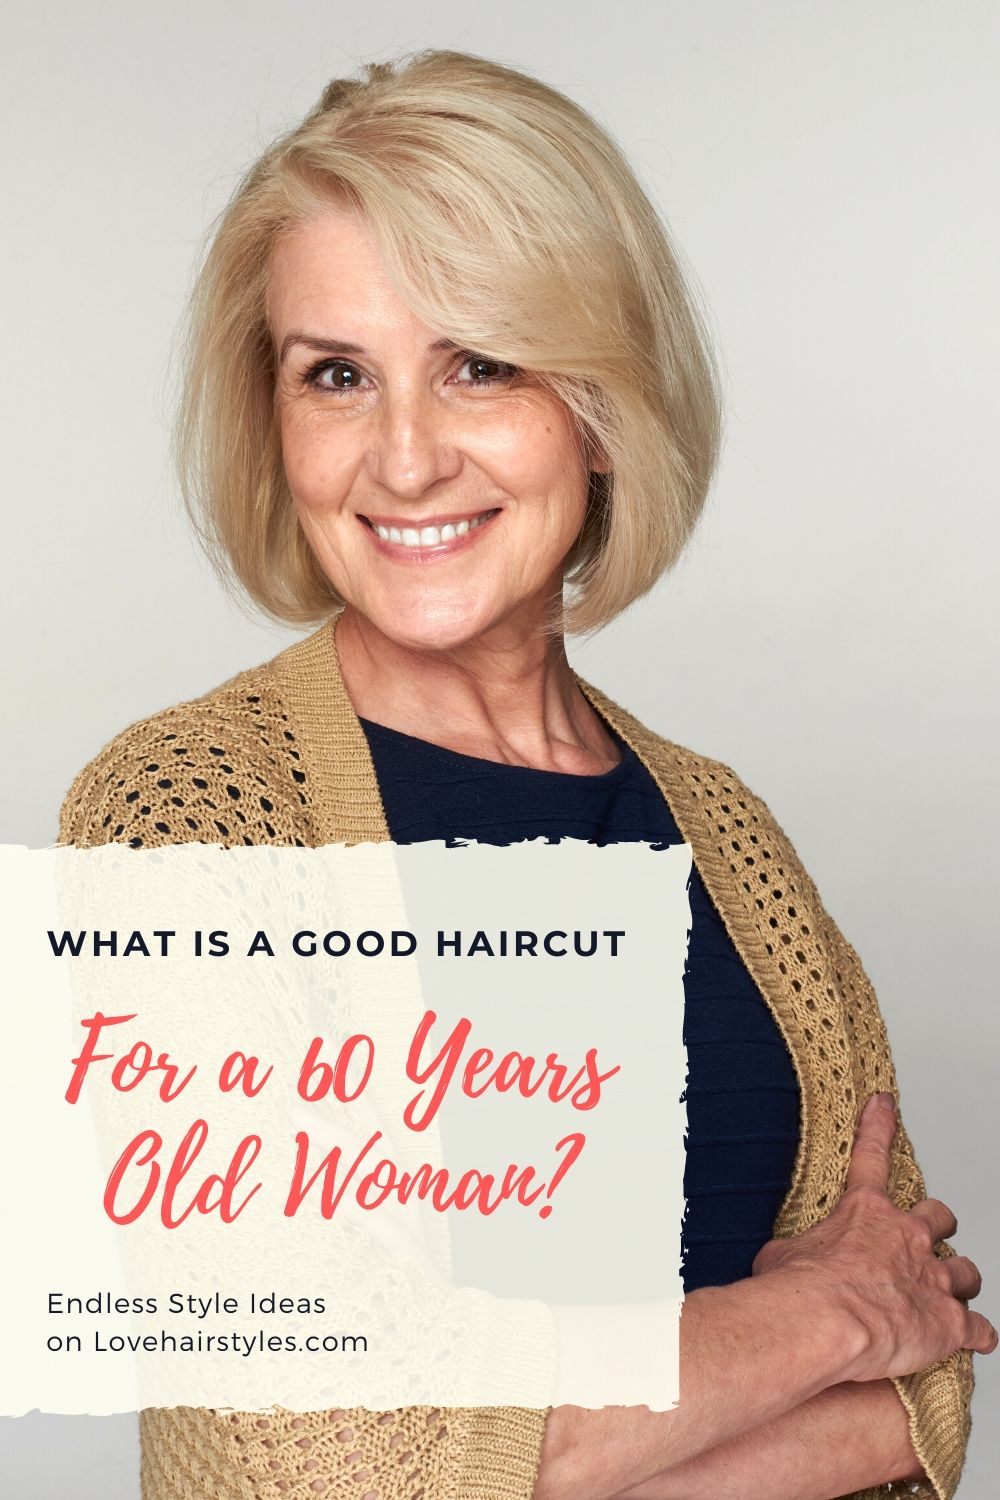 What is a Good Haircut for a 60 Years Old Woman?